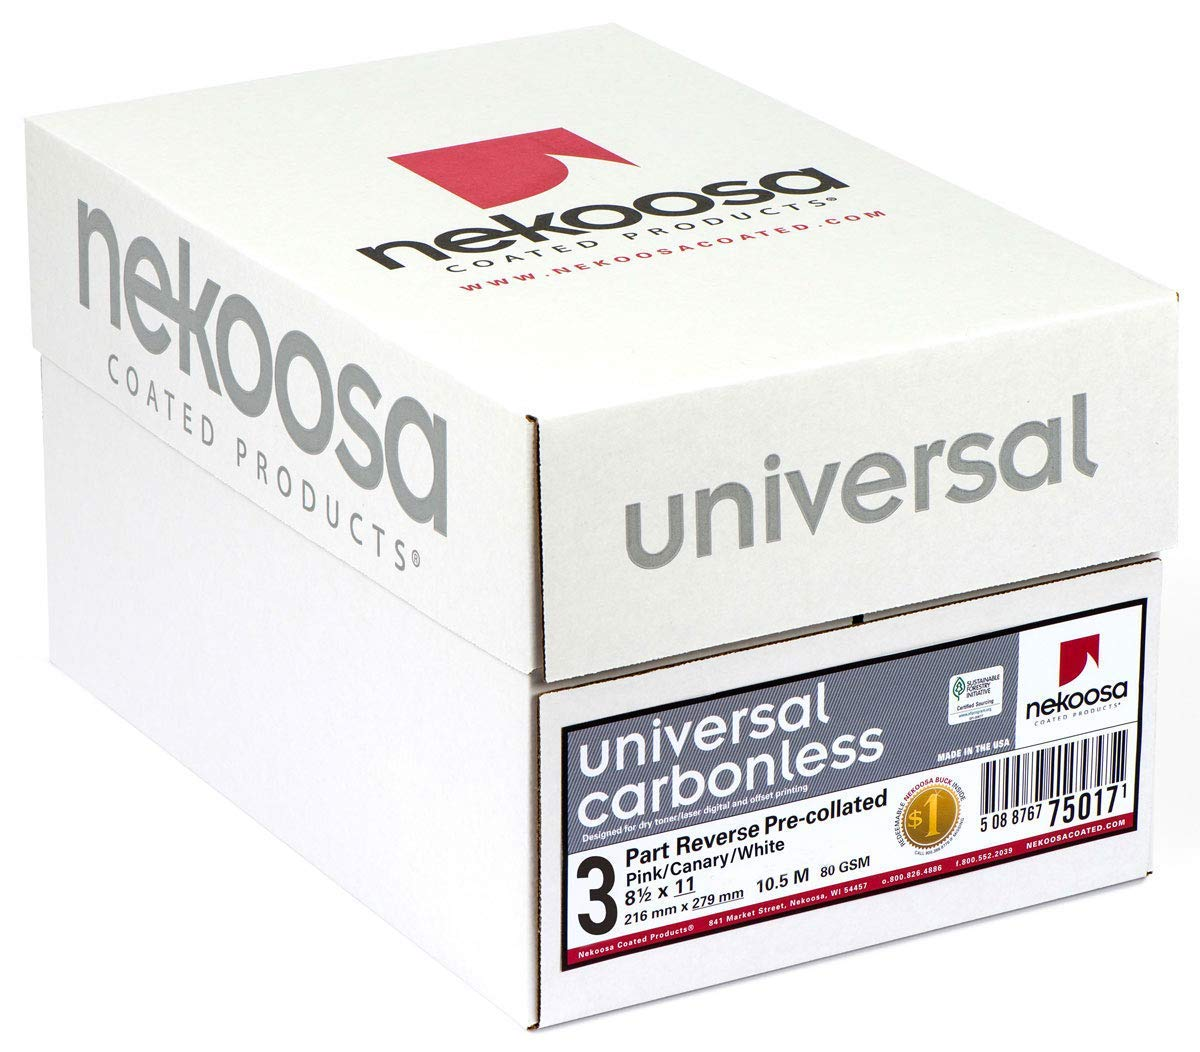 8.5 x 11 Nekoosa Universal Carbonless Paper, 3 Part Reverse (Bright White/Canary/Pink), 835 Sets, 2505 Sheets, 5 Reams